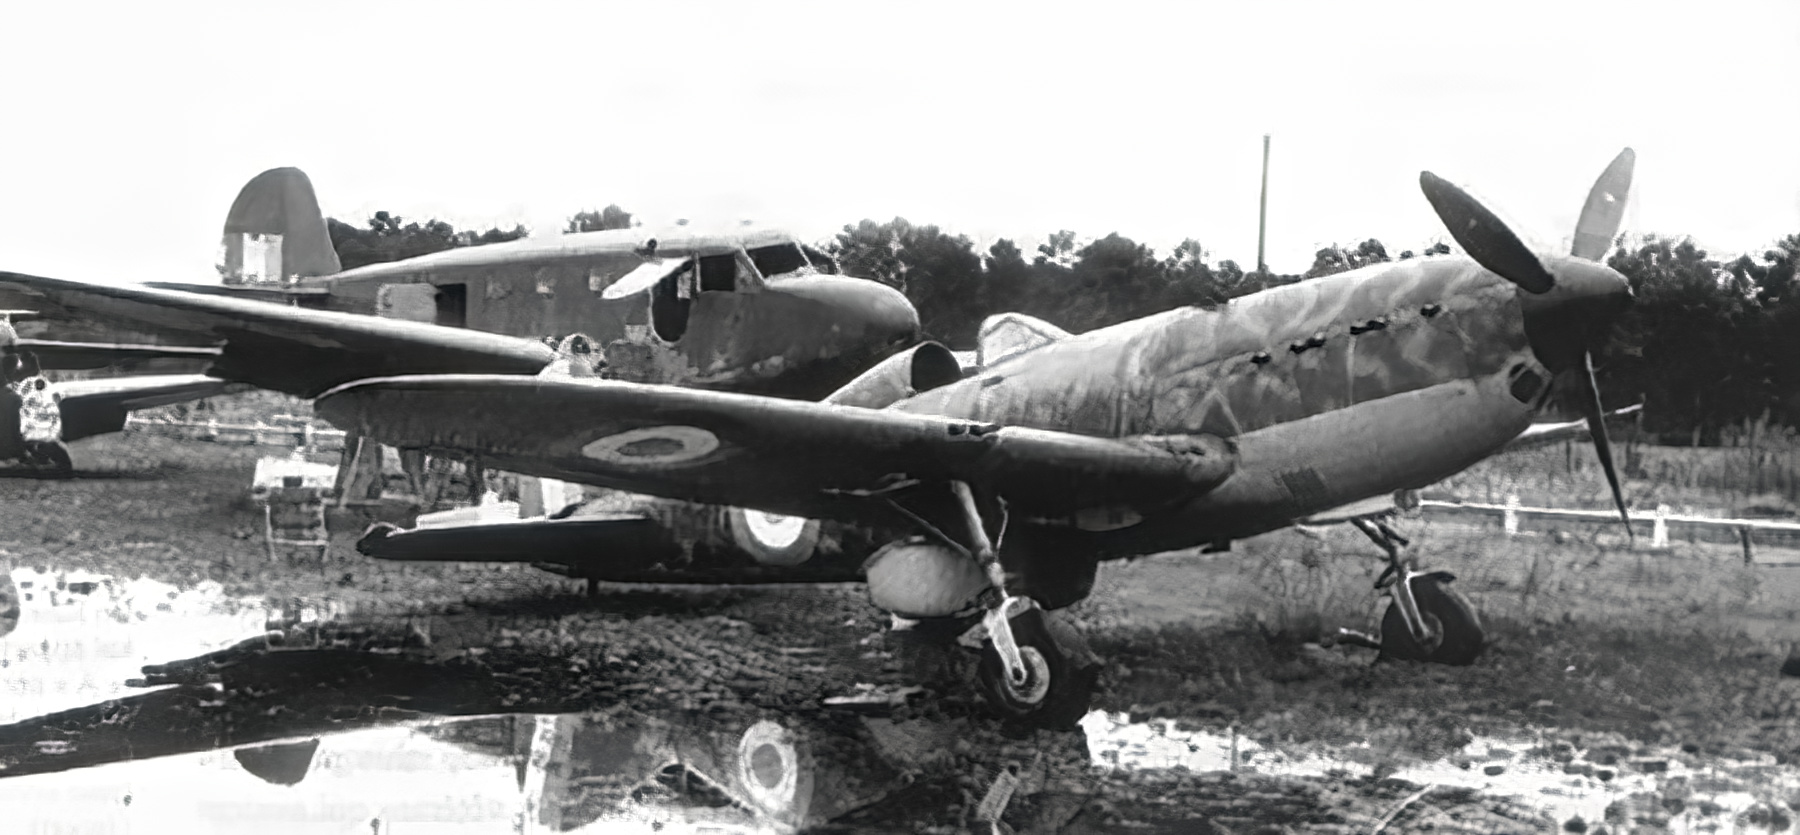 French Airforce Arsenal VG 33 sits abandoned after the fall of France June 1940 ebay 01